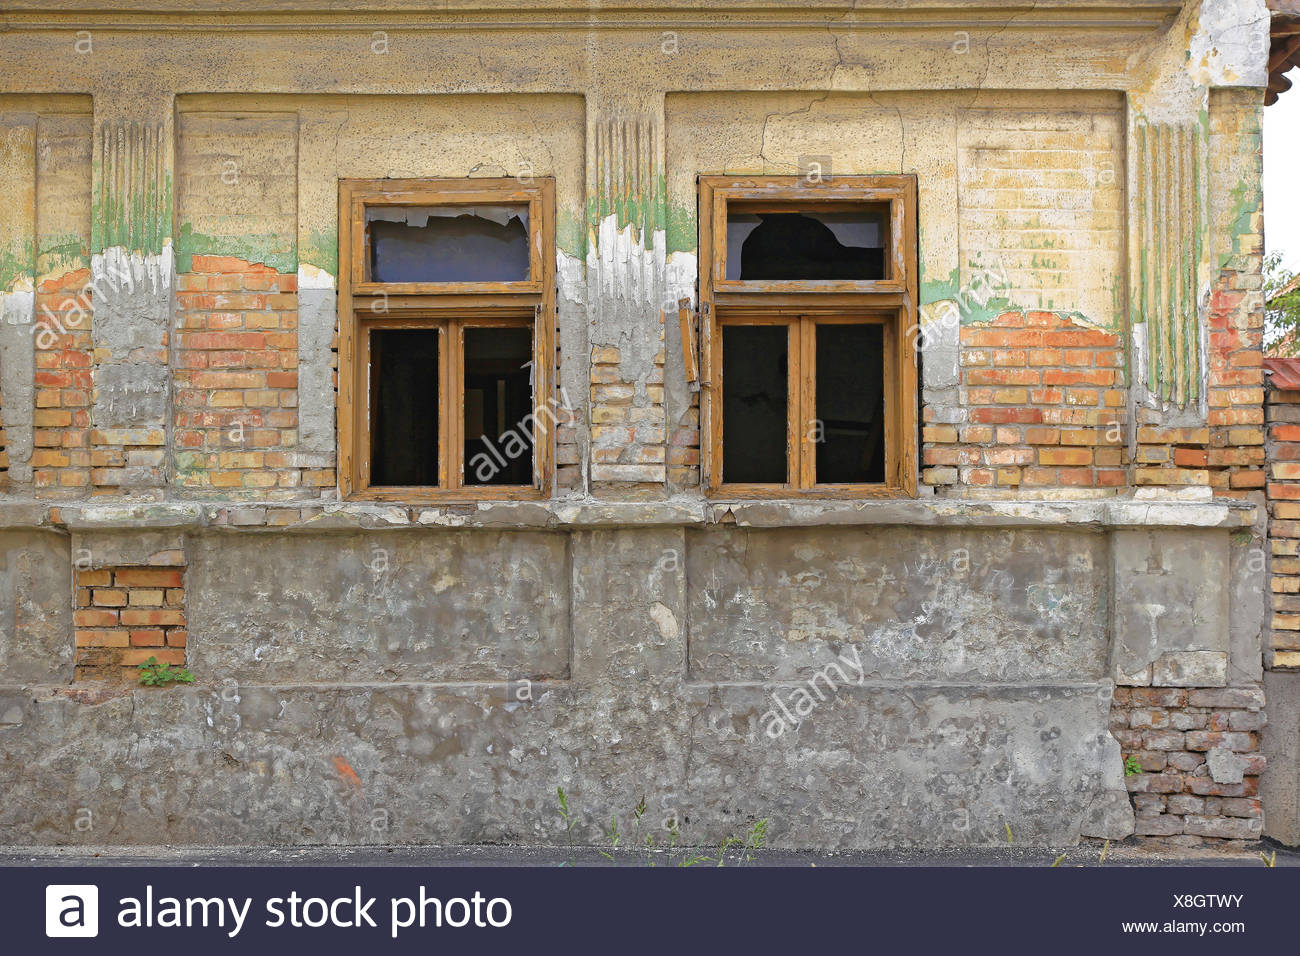 Run Down House - Stock Image